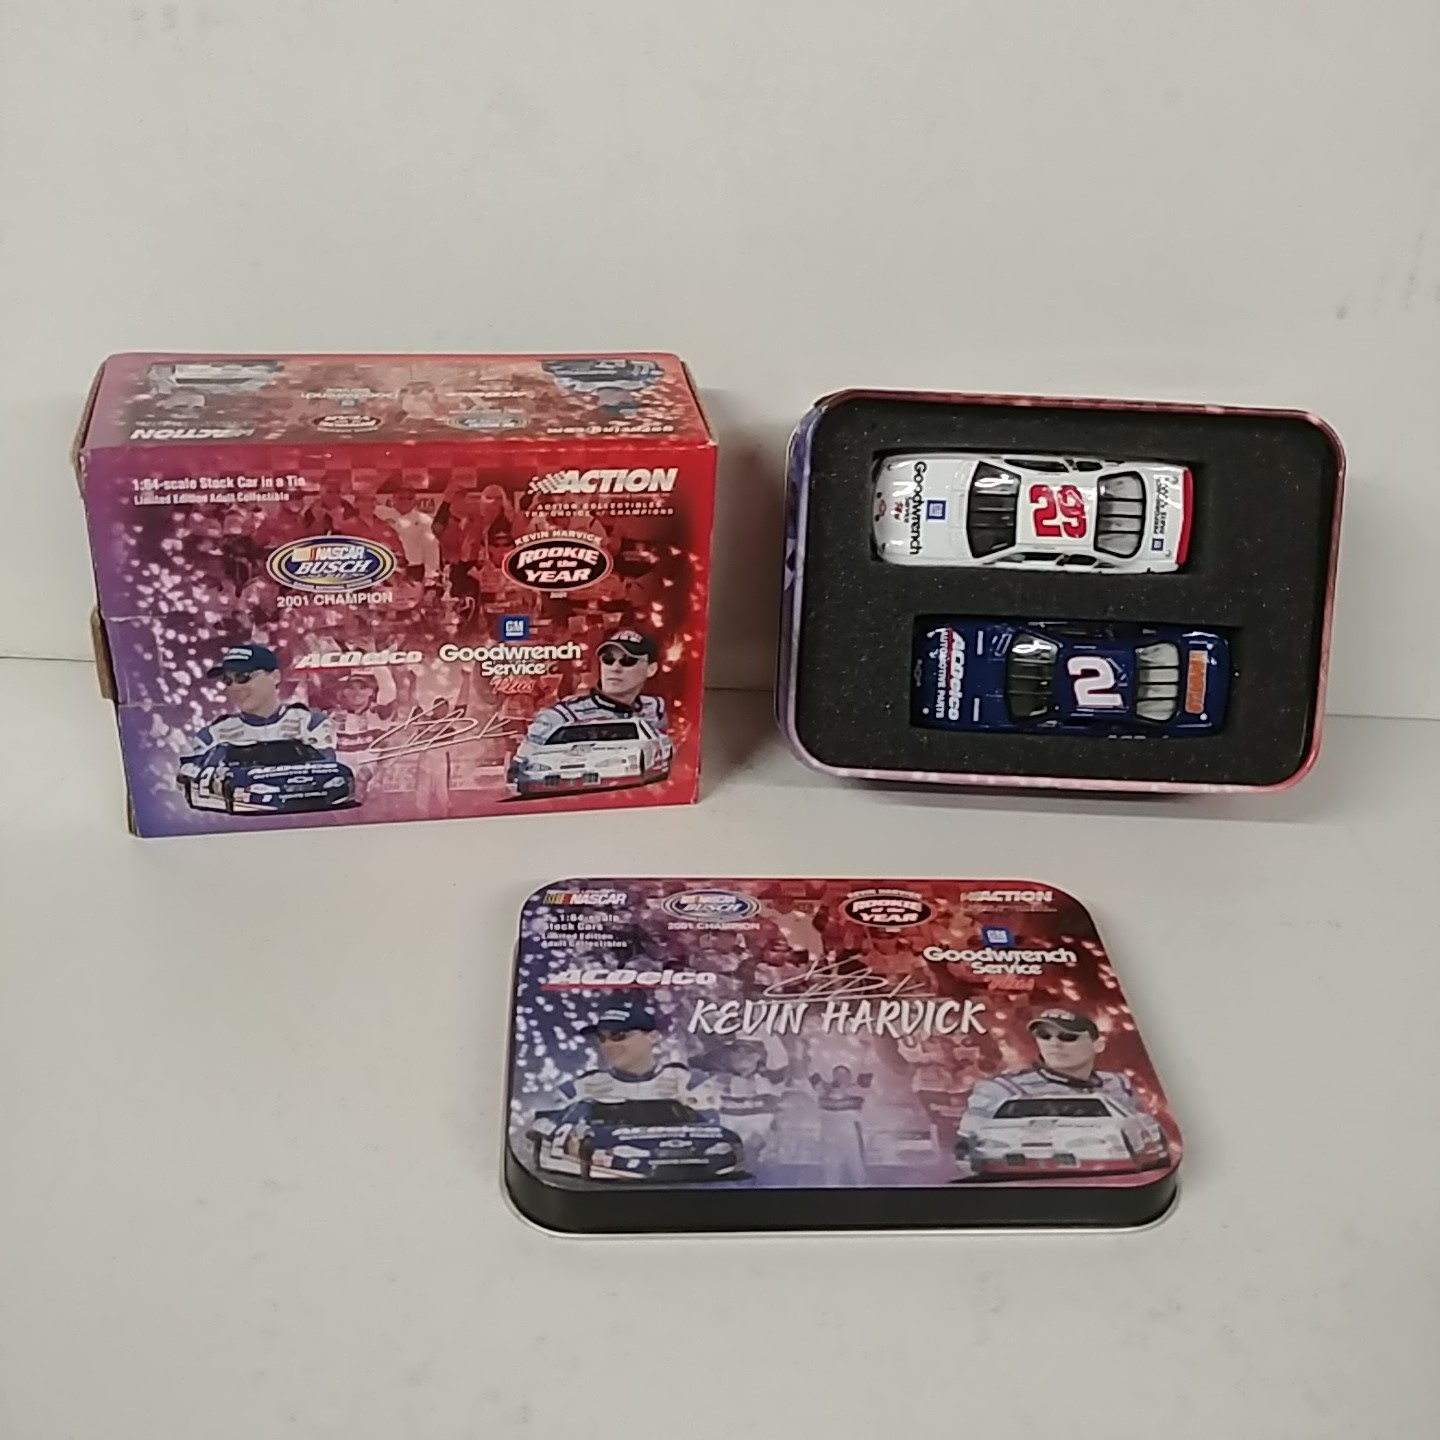 """2001 Kevin Harvick 1/64th """"Busch Champion"""" """"Winston Cup Rookie of the Year"""" 2 car set in tin"""